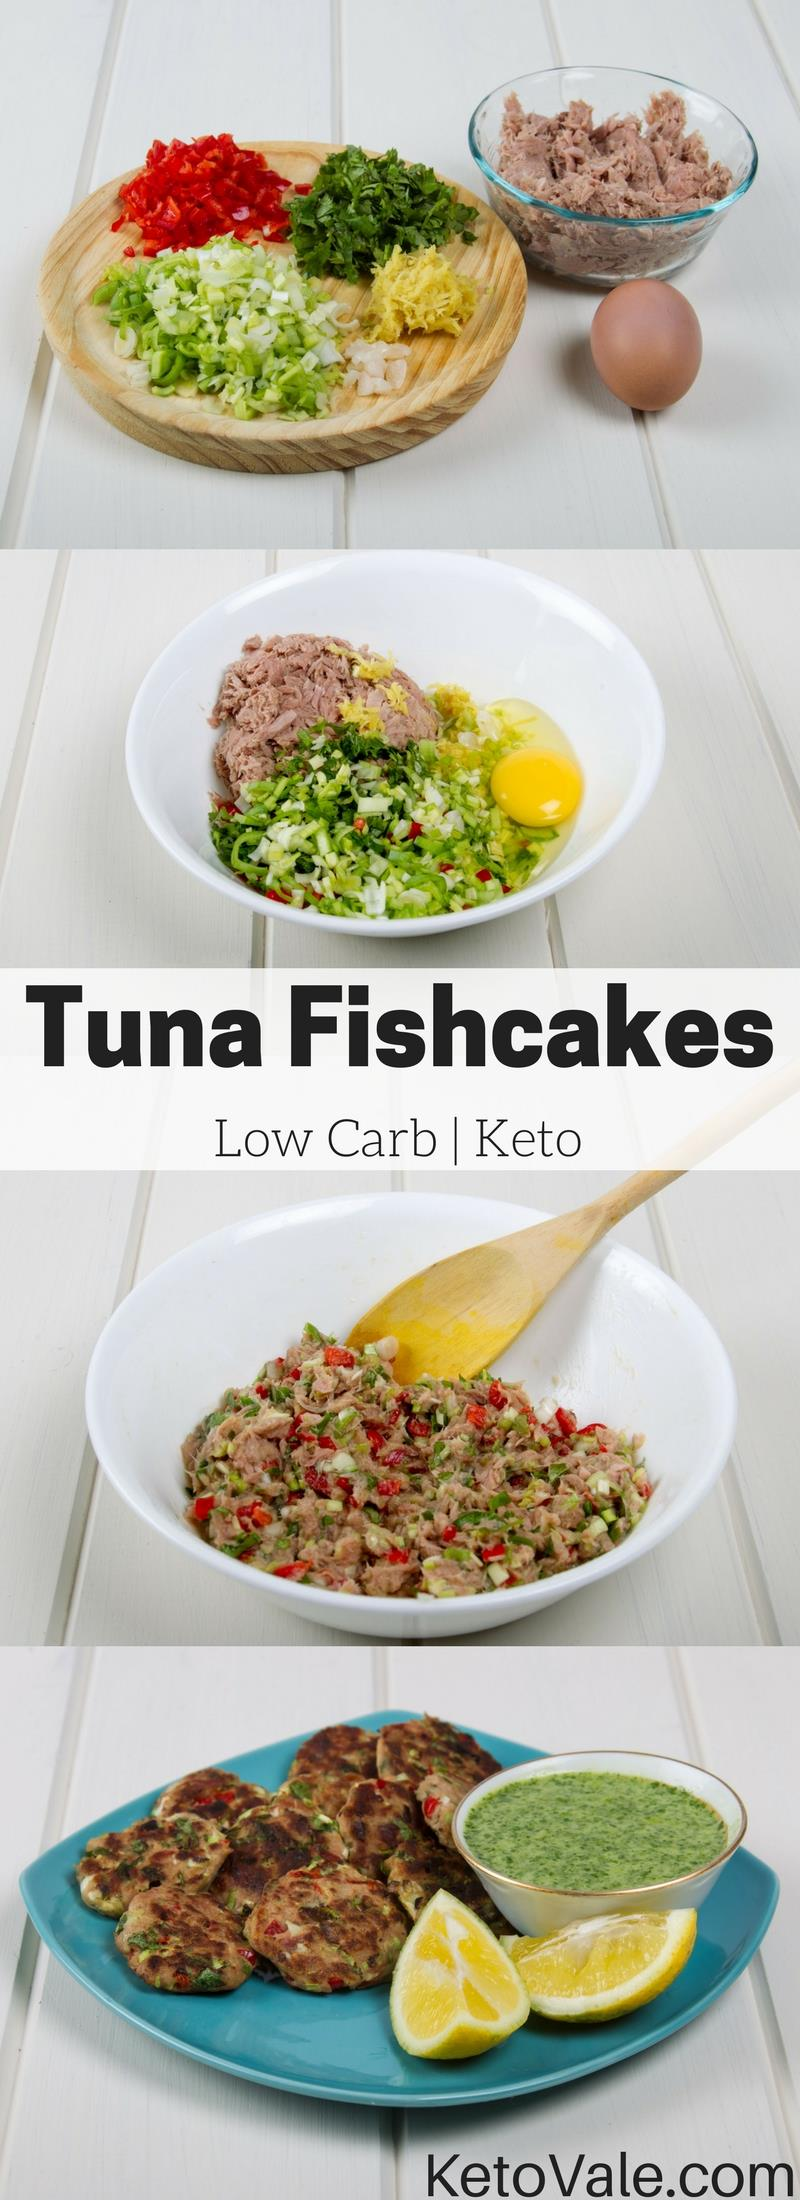 Keto Tuna Fishcakes